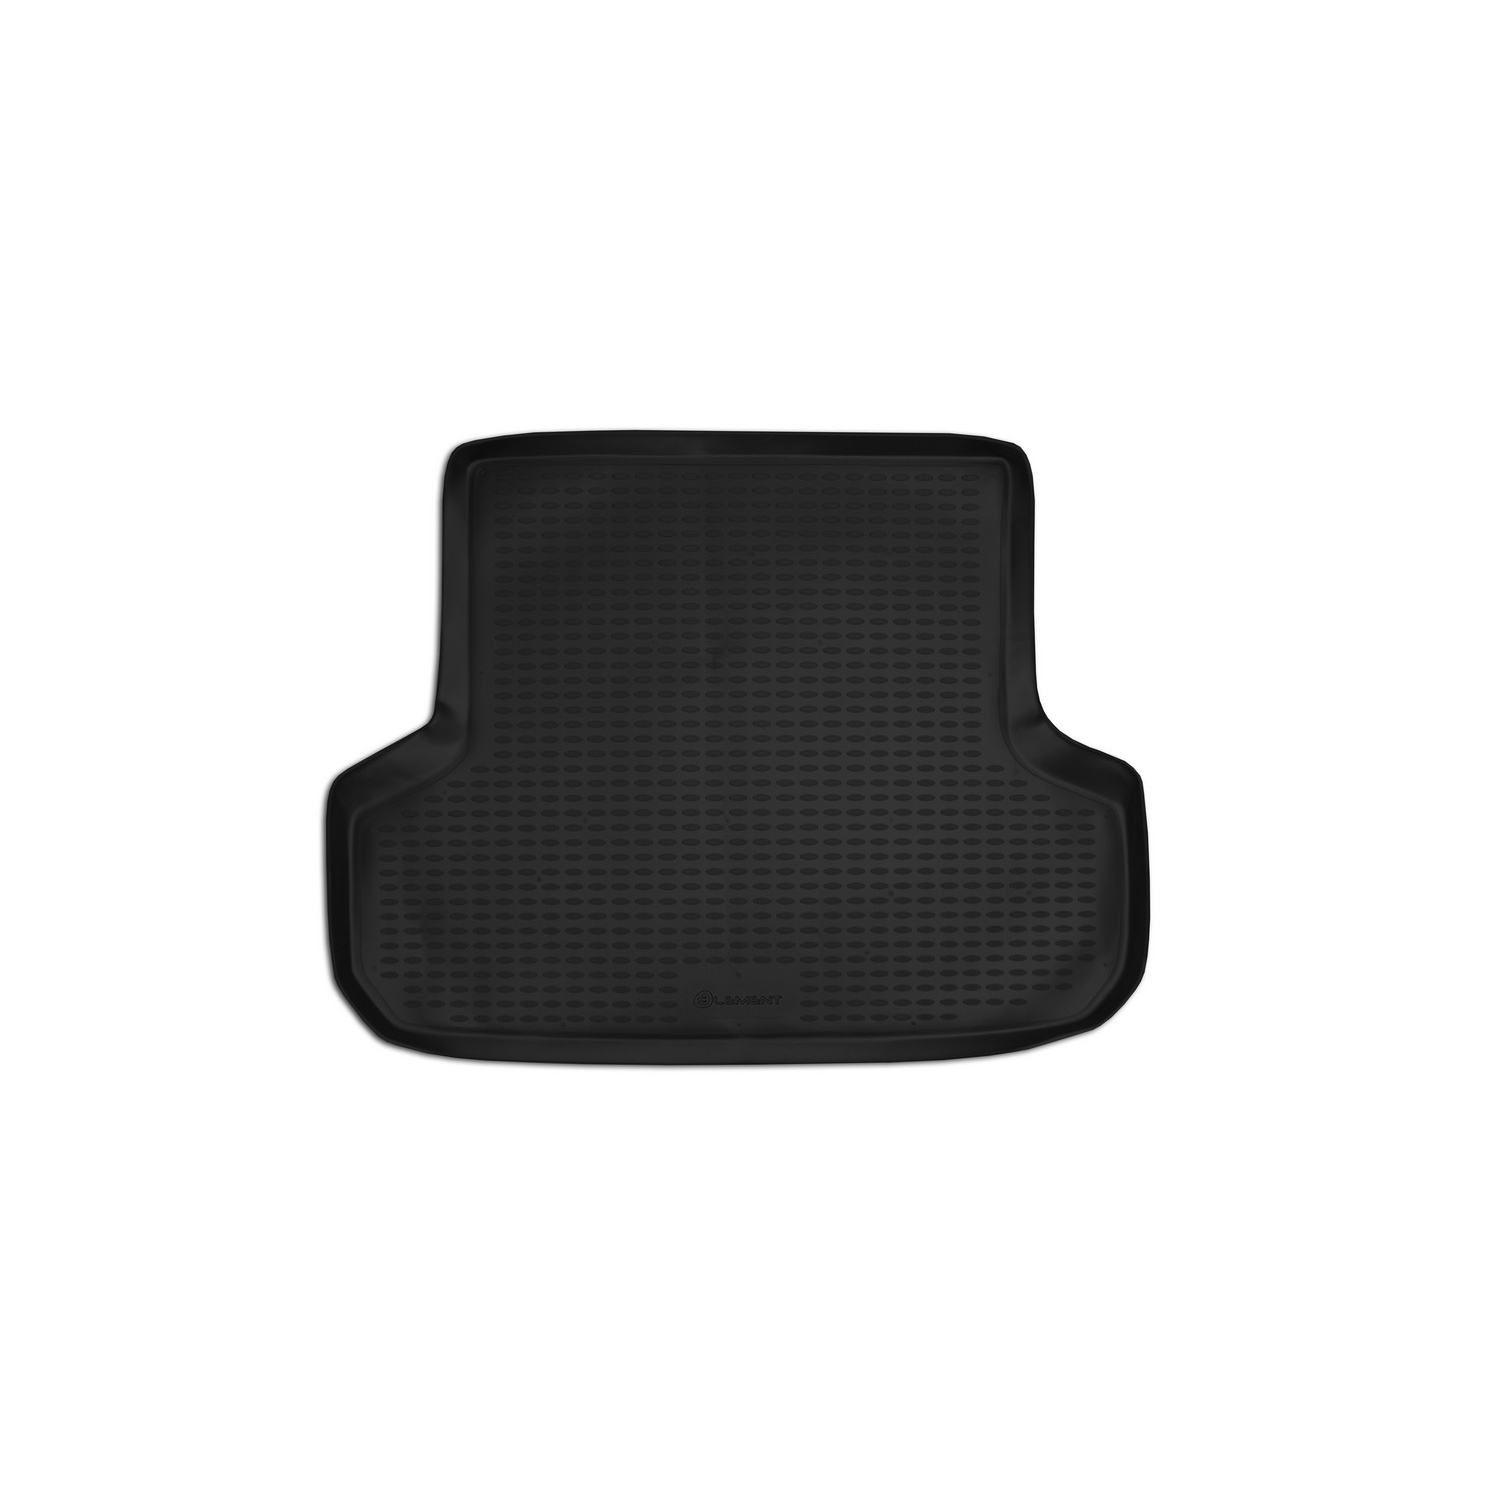 Trunk Mat For MITSUBISHI Pajero Sport 1997-2008, Implement. NLC.35.07.B13